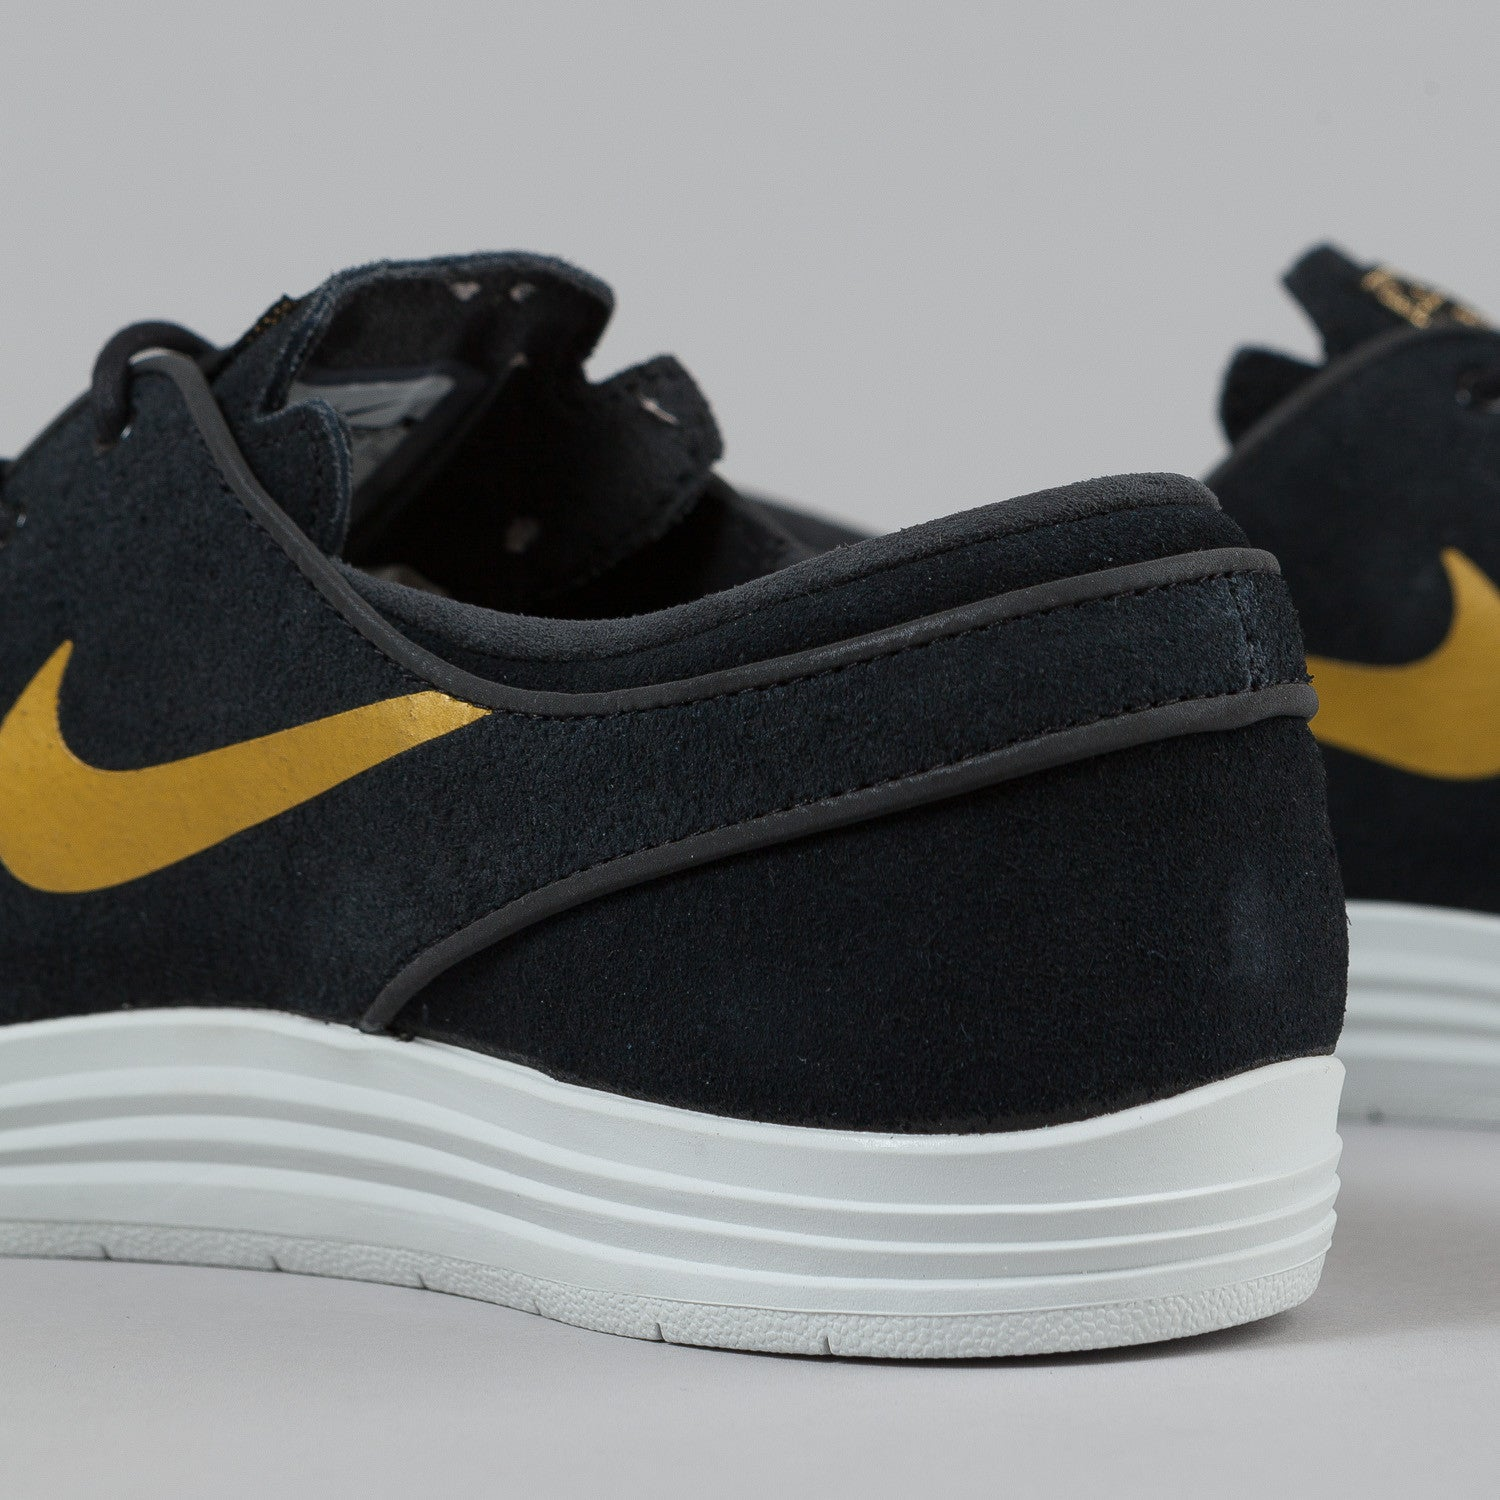 Nike SB Lunar Stefan Janoski Black/Metallic Gold - Summit White